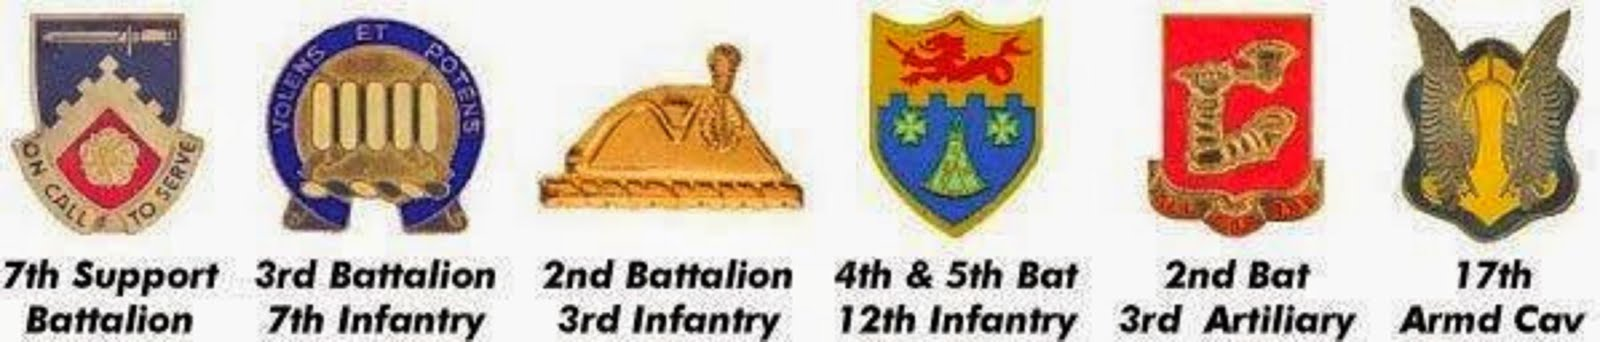 199th LIGHT INFANTRY BRIGADE SUPPORT BATTALIONS